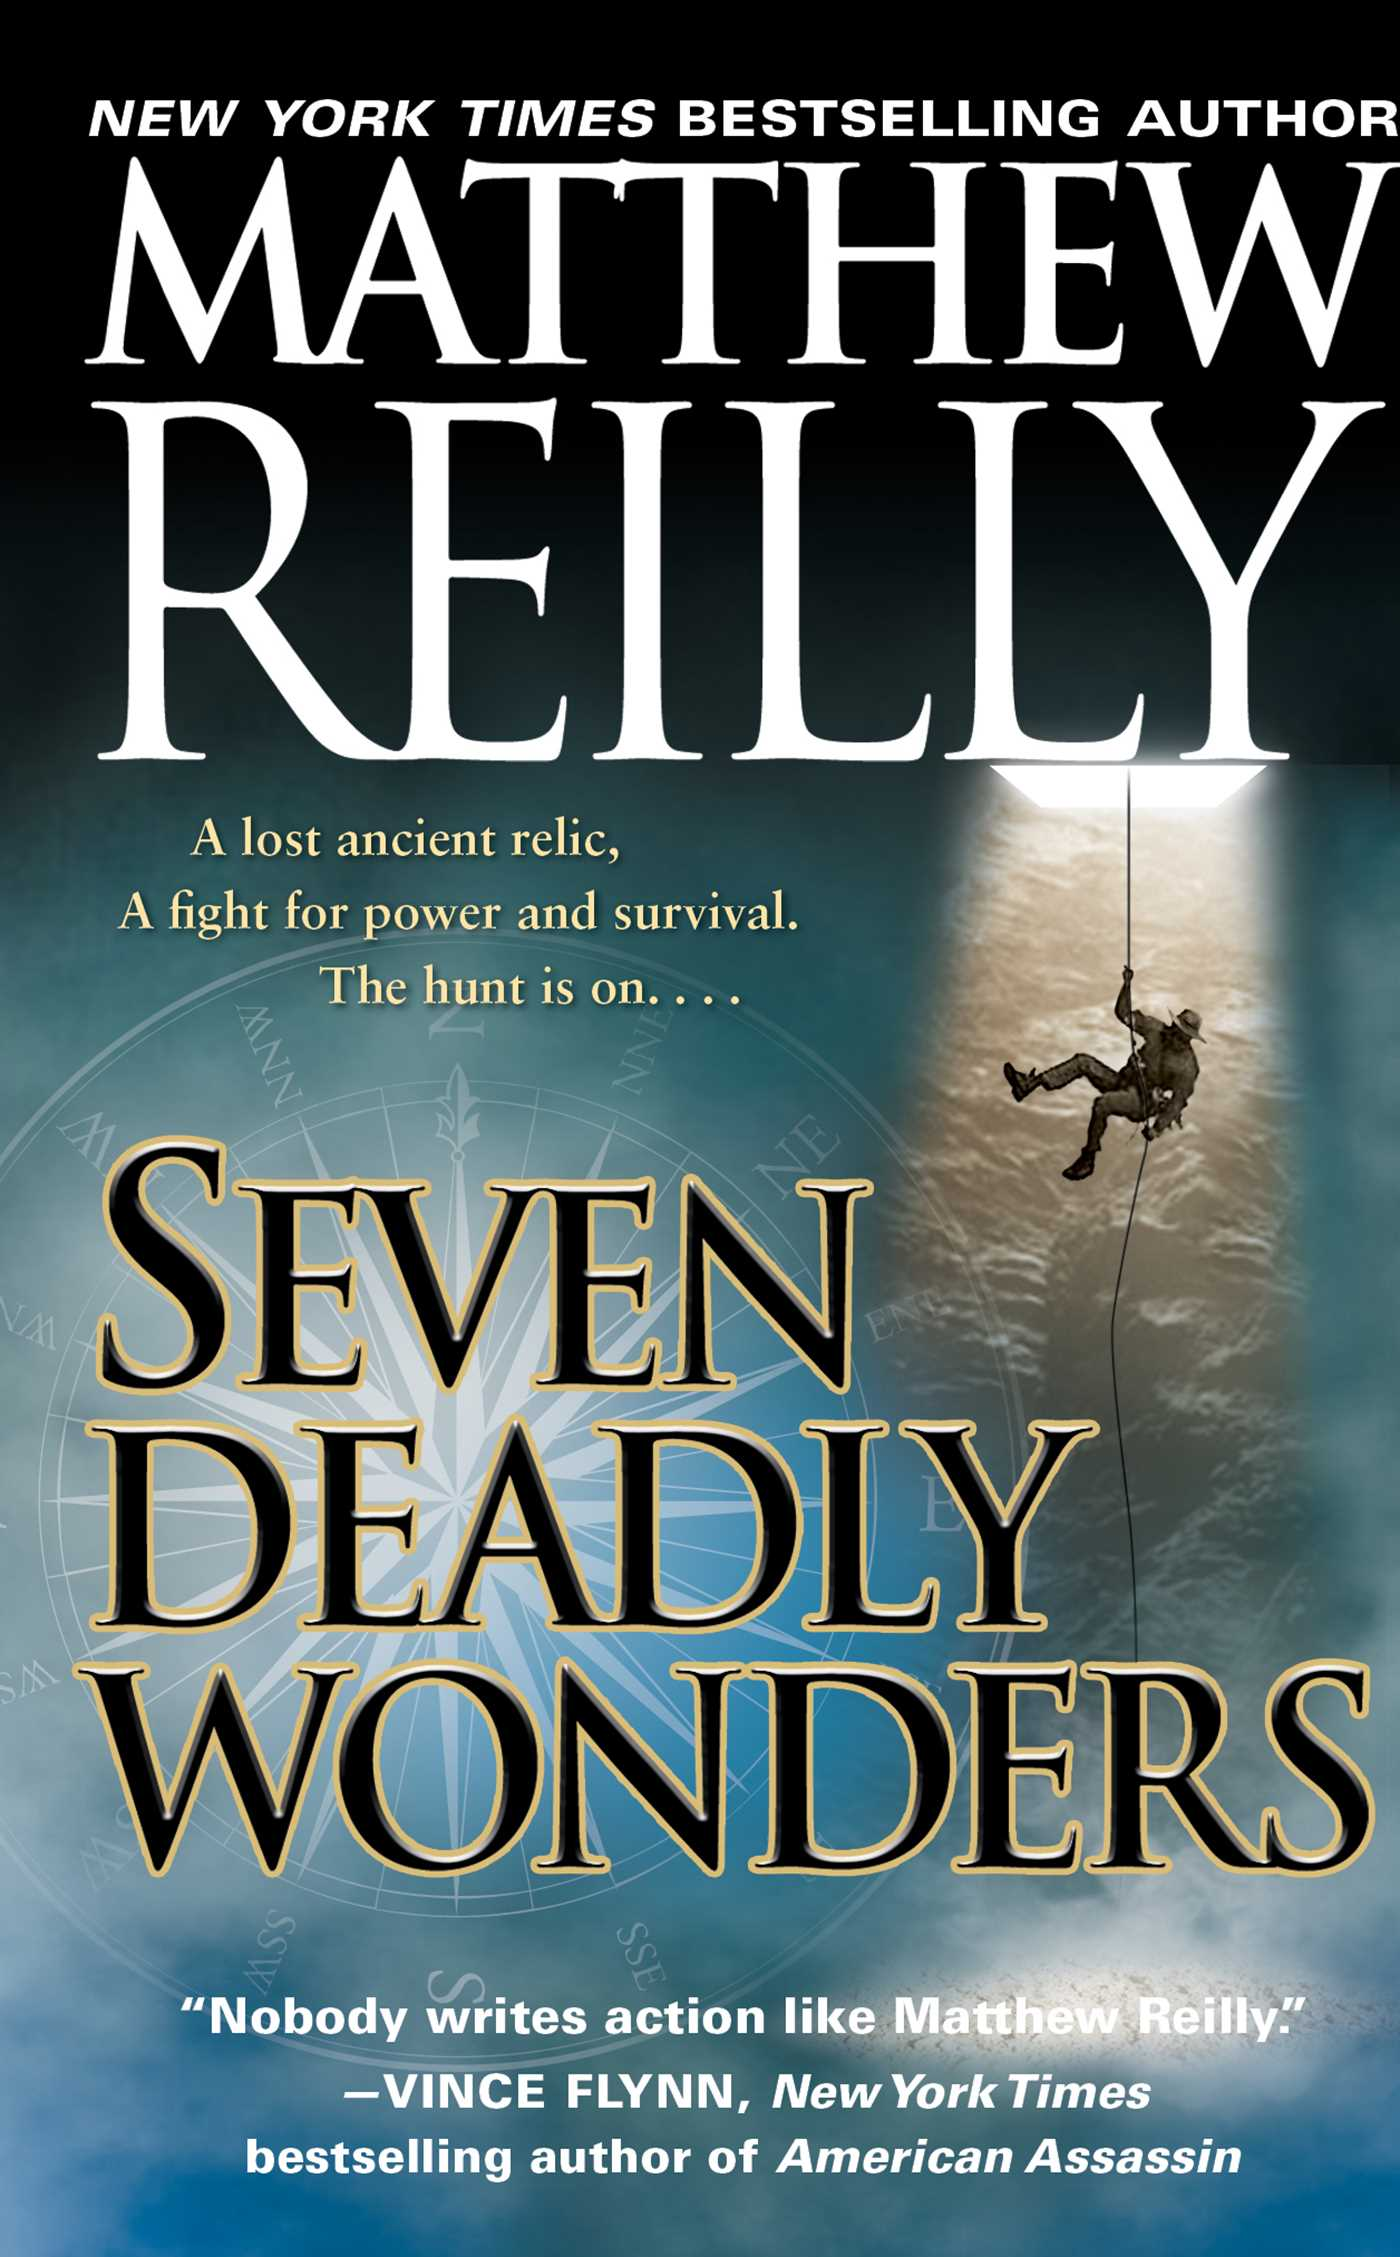 Seven-deadly-wonders-9780743282413_hr